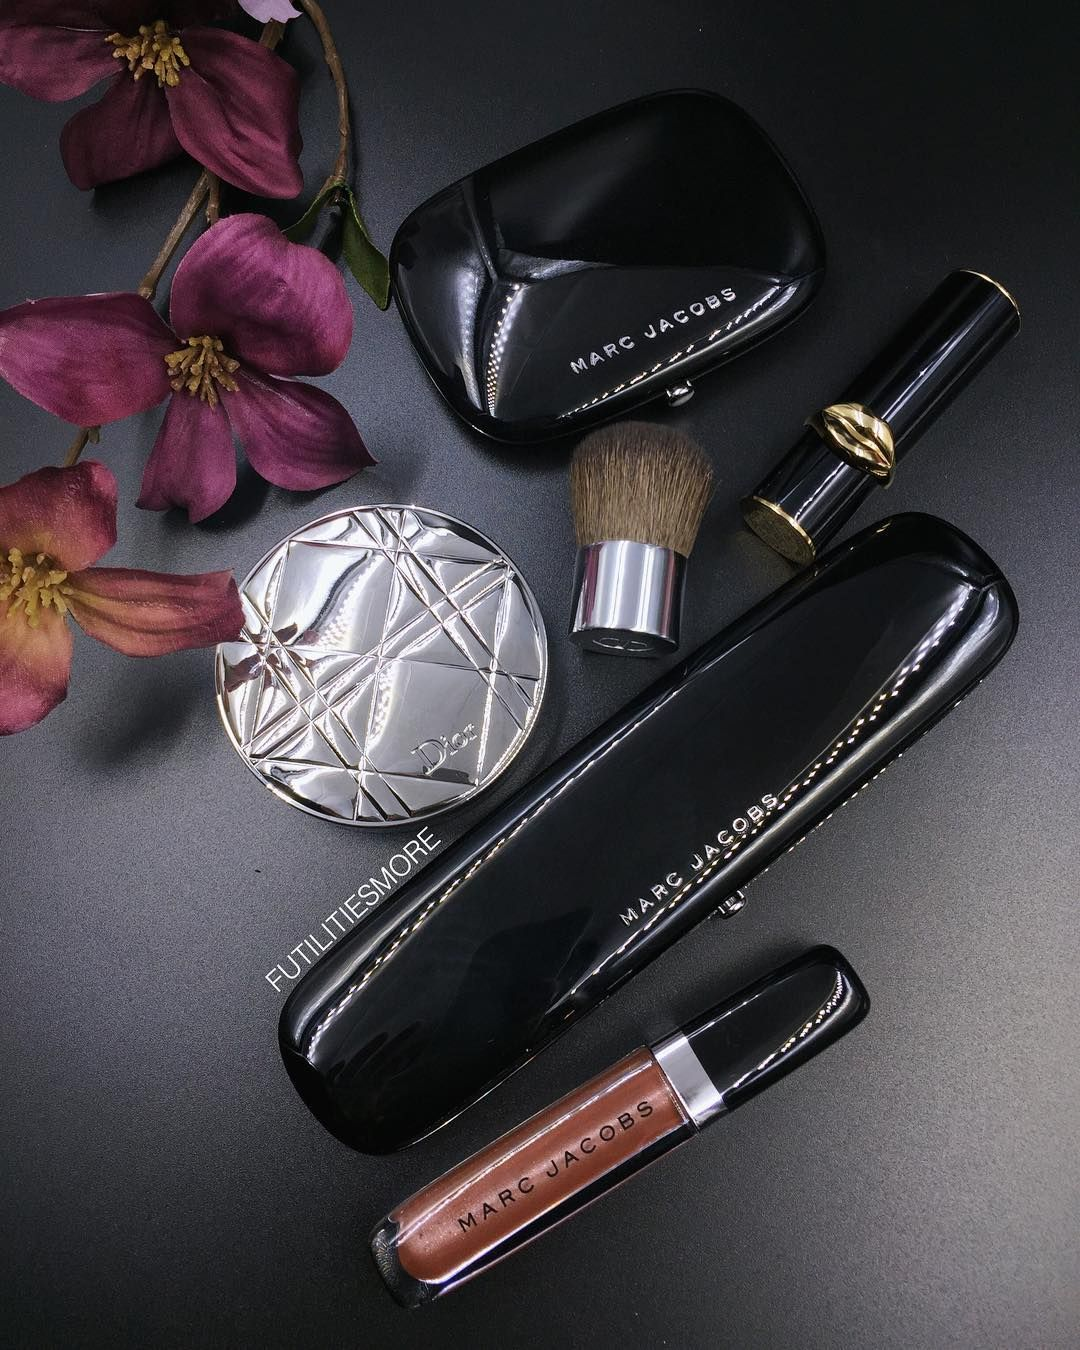 Highend makeup is so satisfying...a nice little treat to